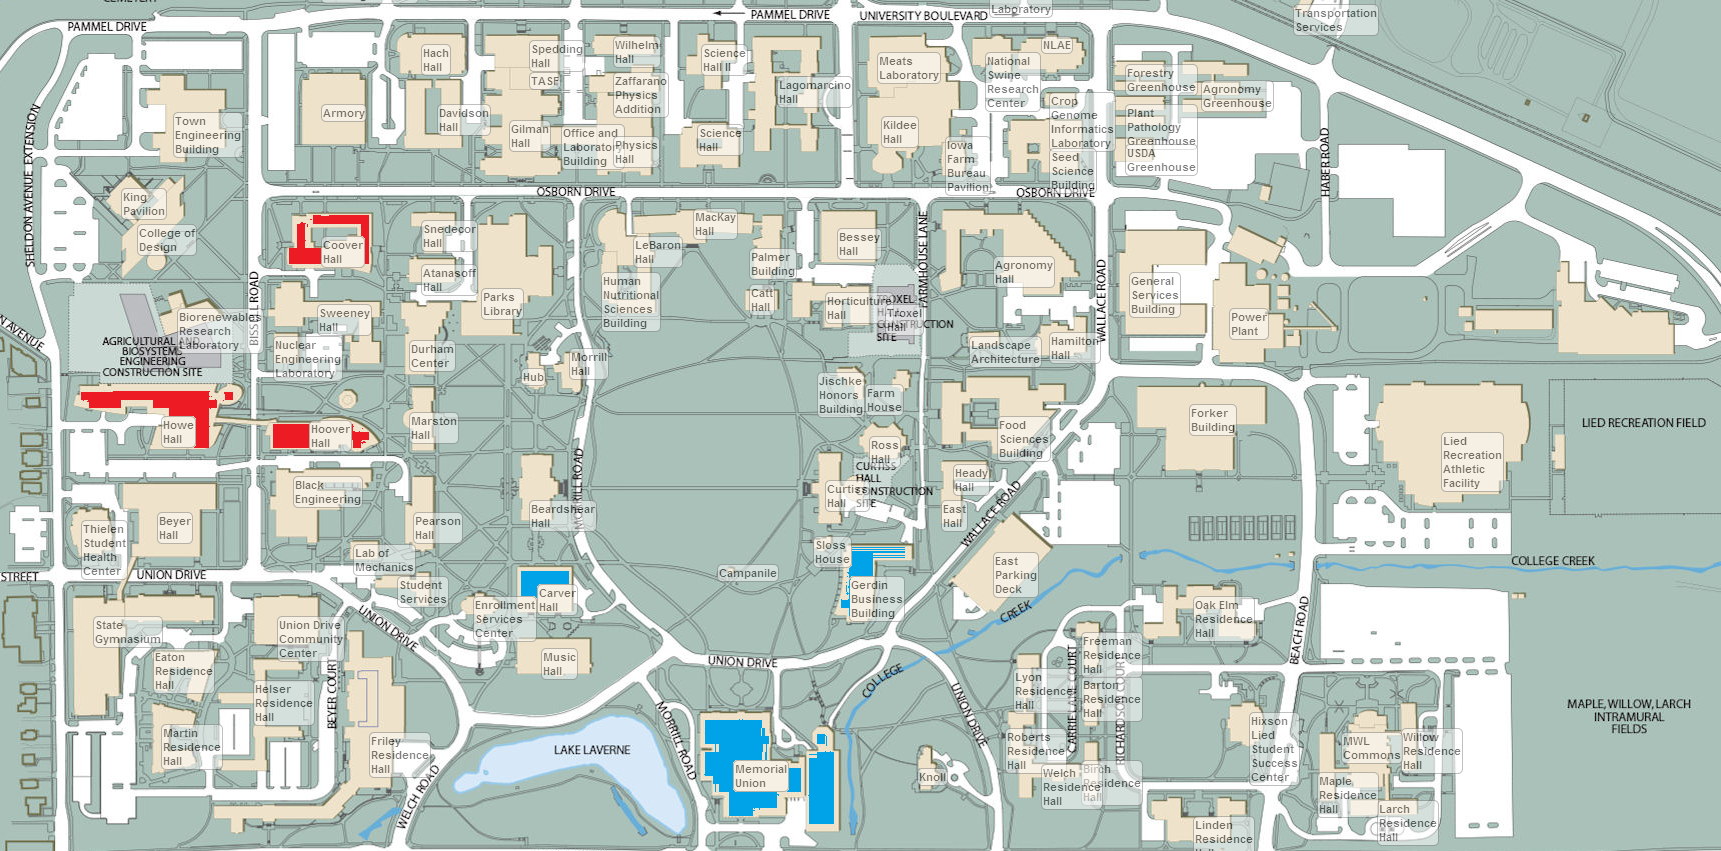 Make sure to grab a campus map so you know where you